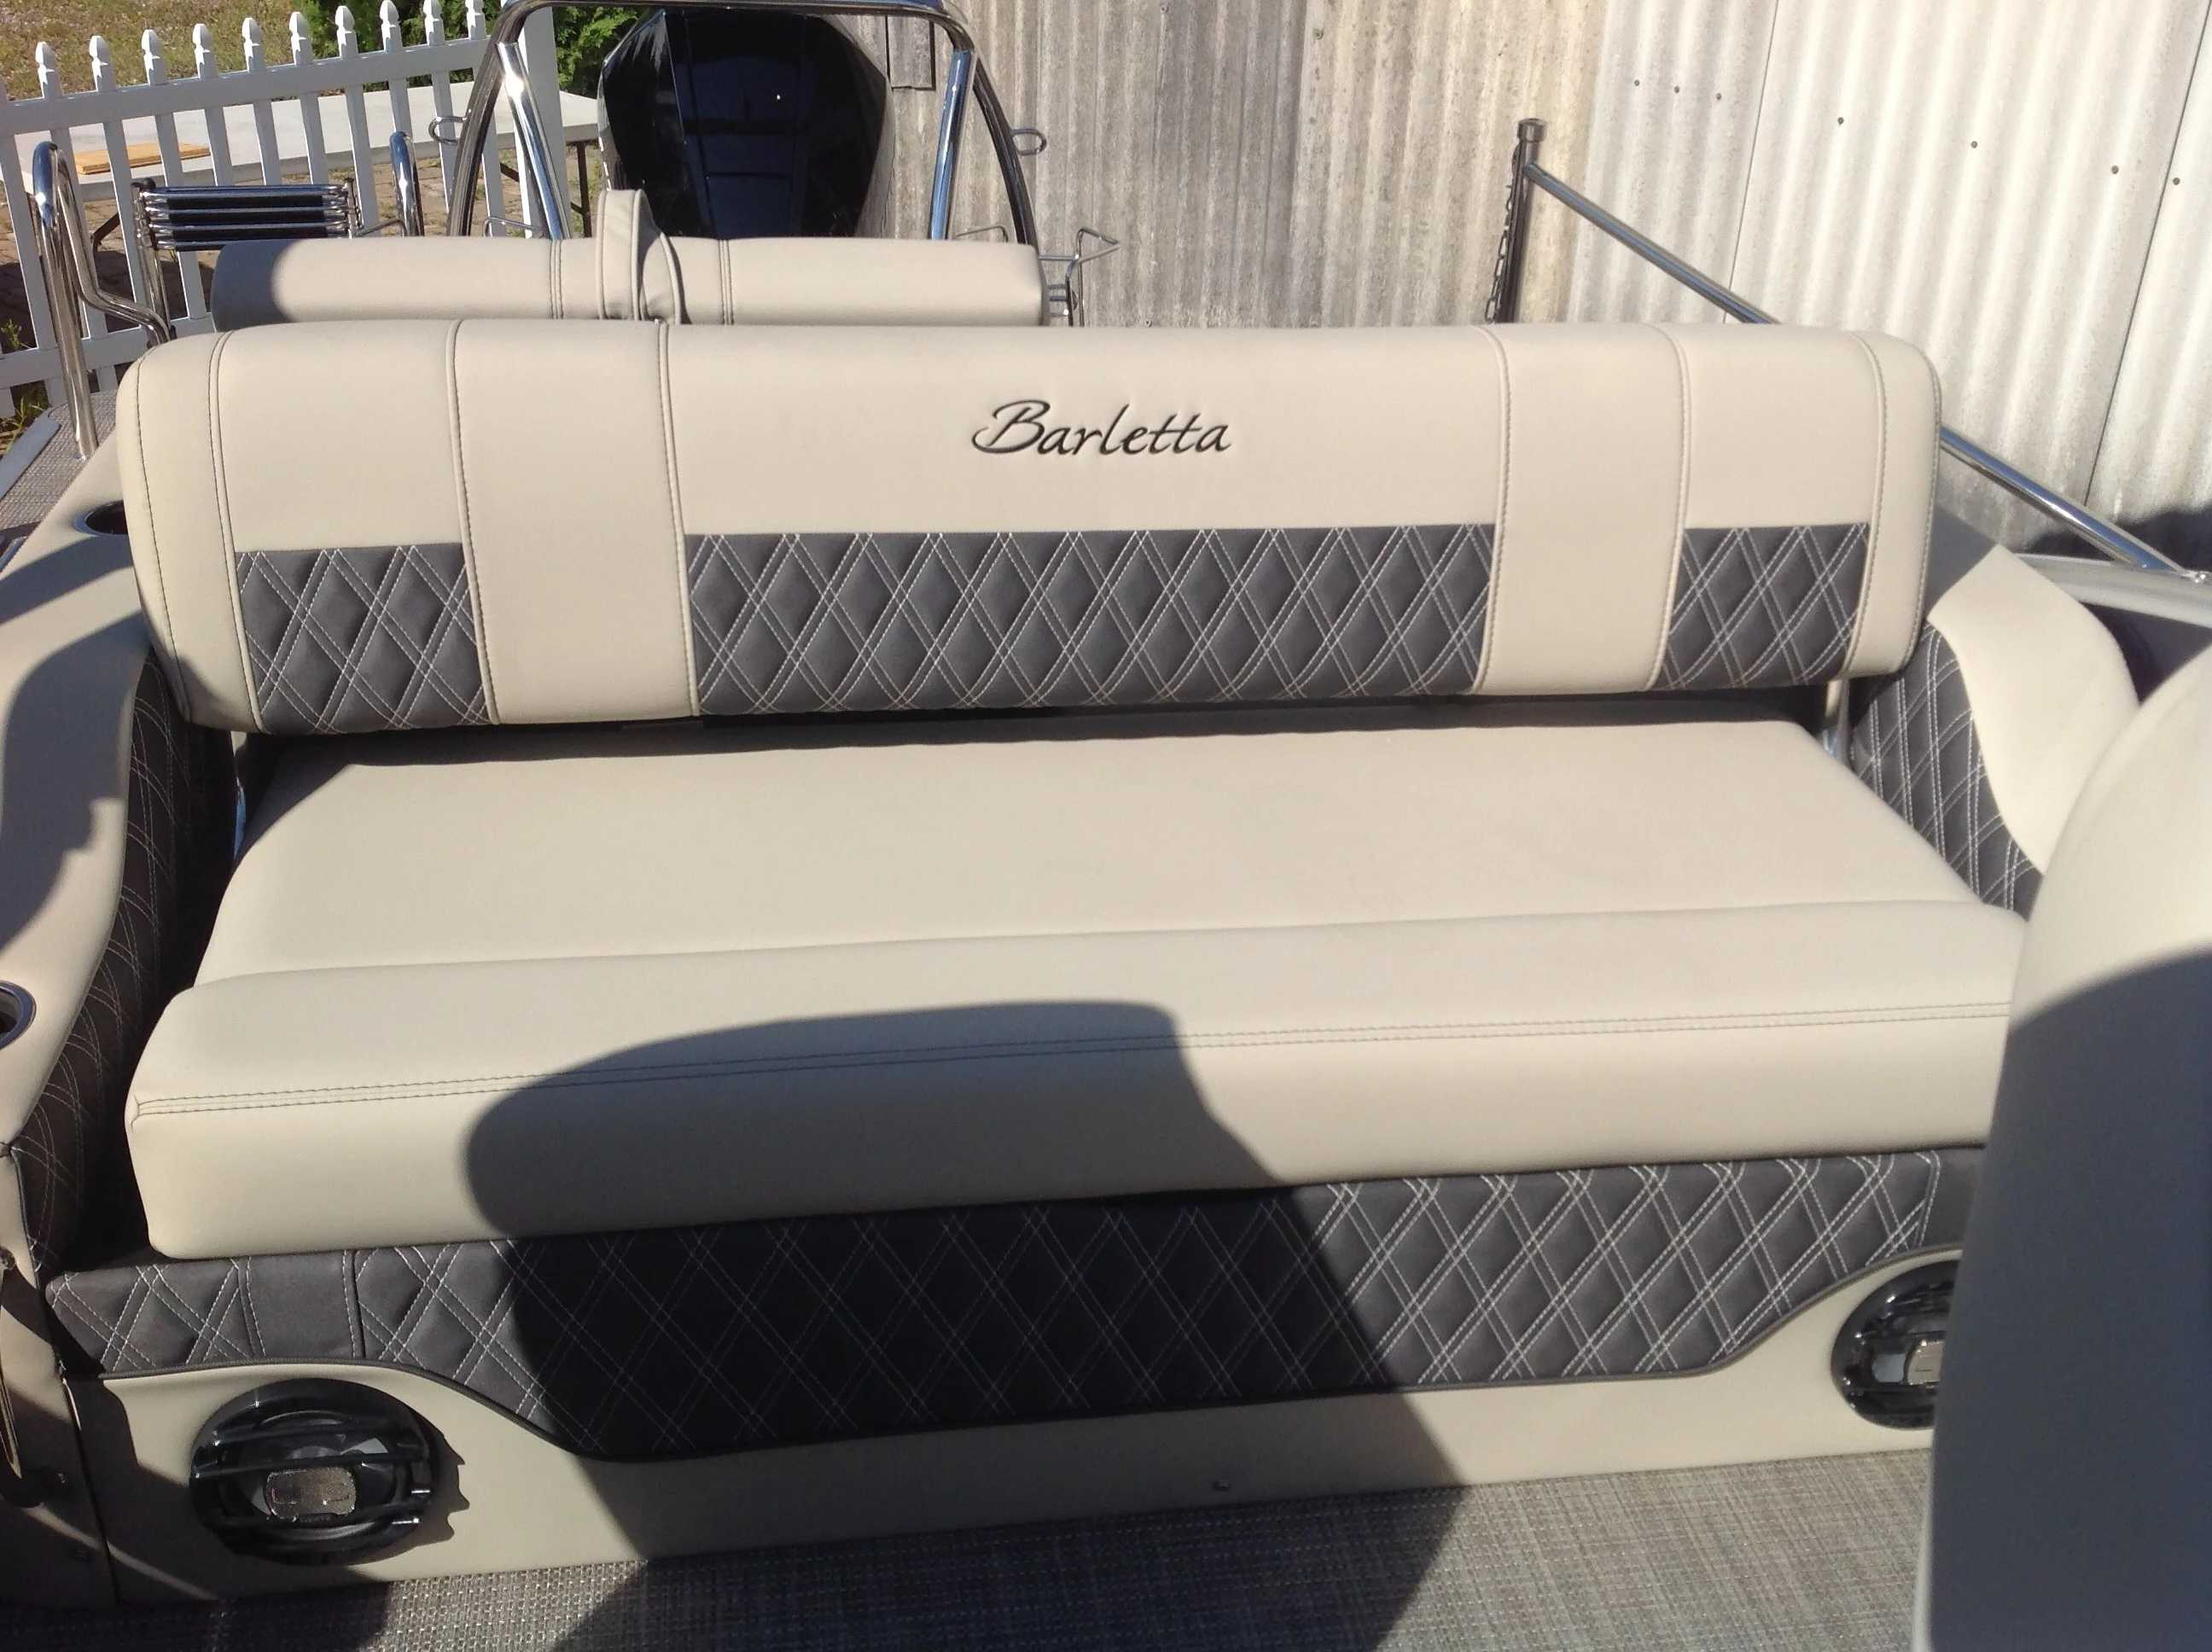 2021 Barletta boat for sale, model of the boat is L25UC & Image # 12 of 17